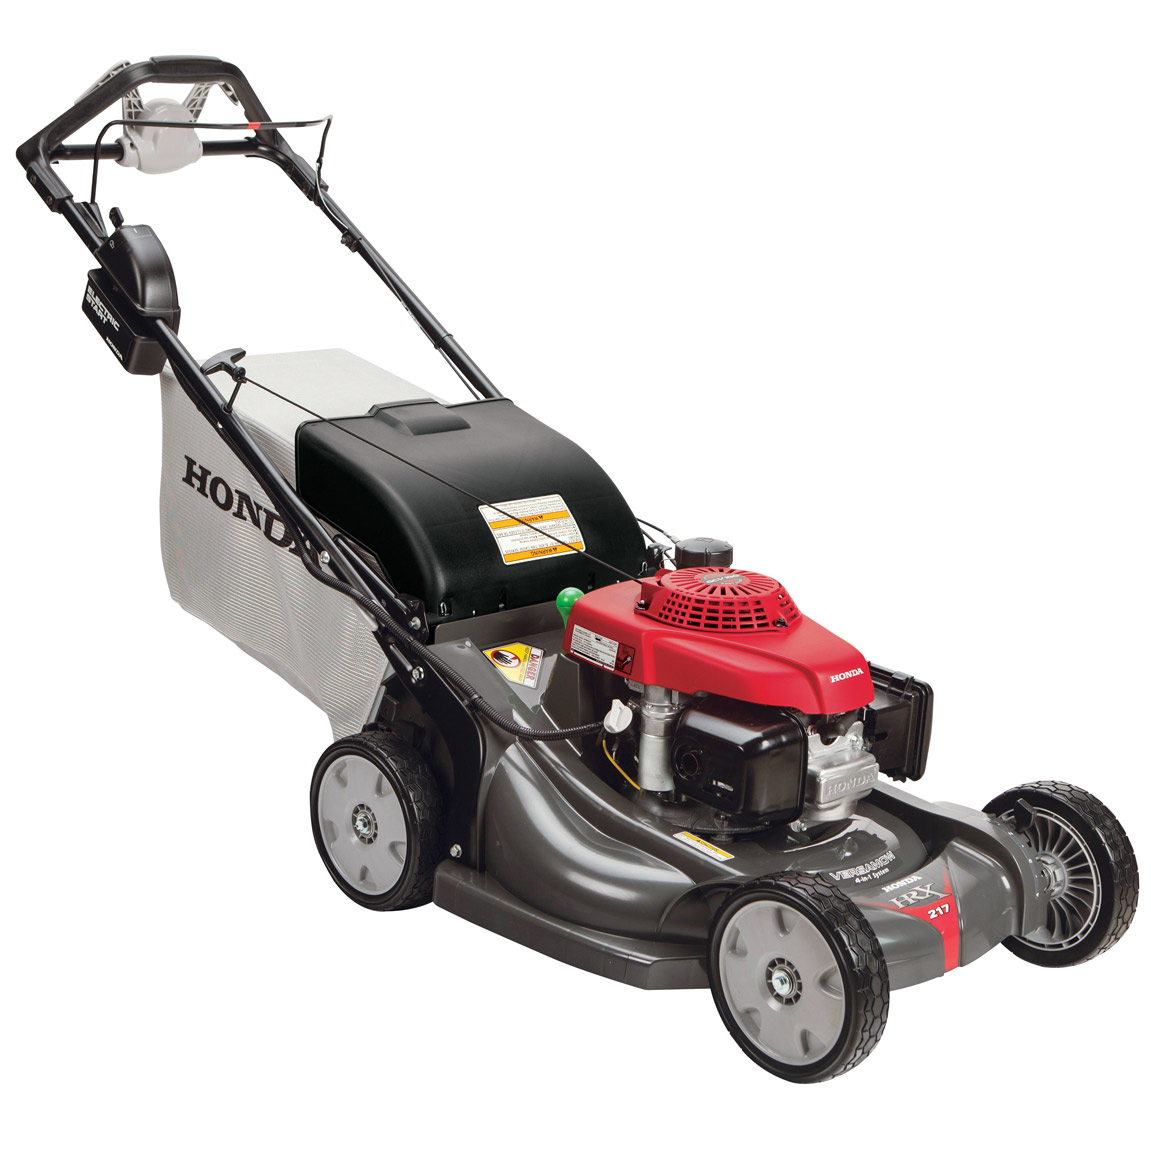 new 2016 honda power equipment hrx217vla lawn mowers in riverhead ny. Black Bedroom Furniture Sets. Home Design Ideas